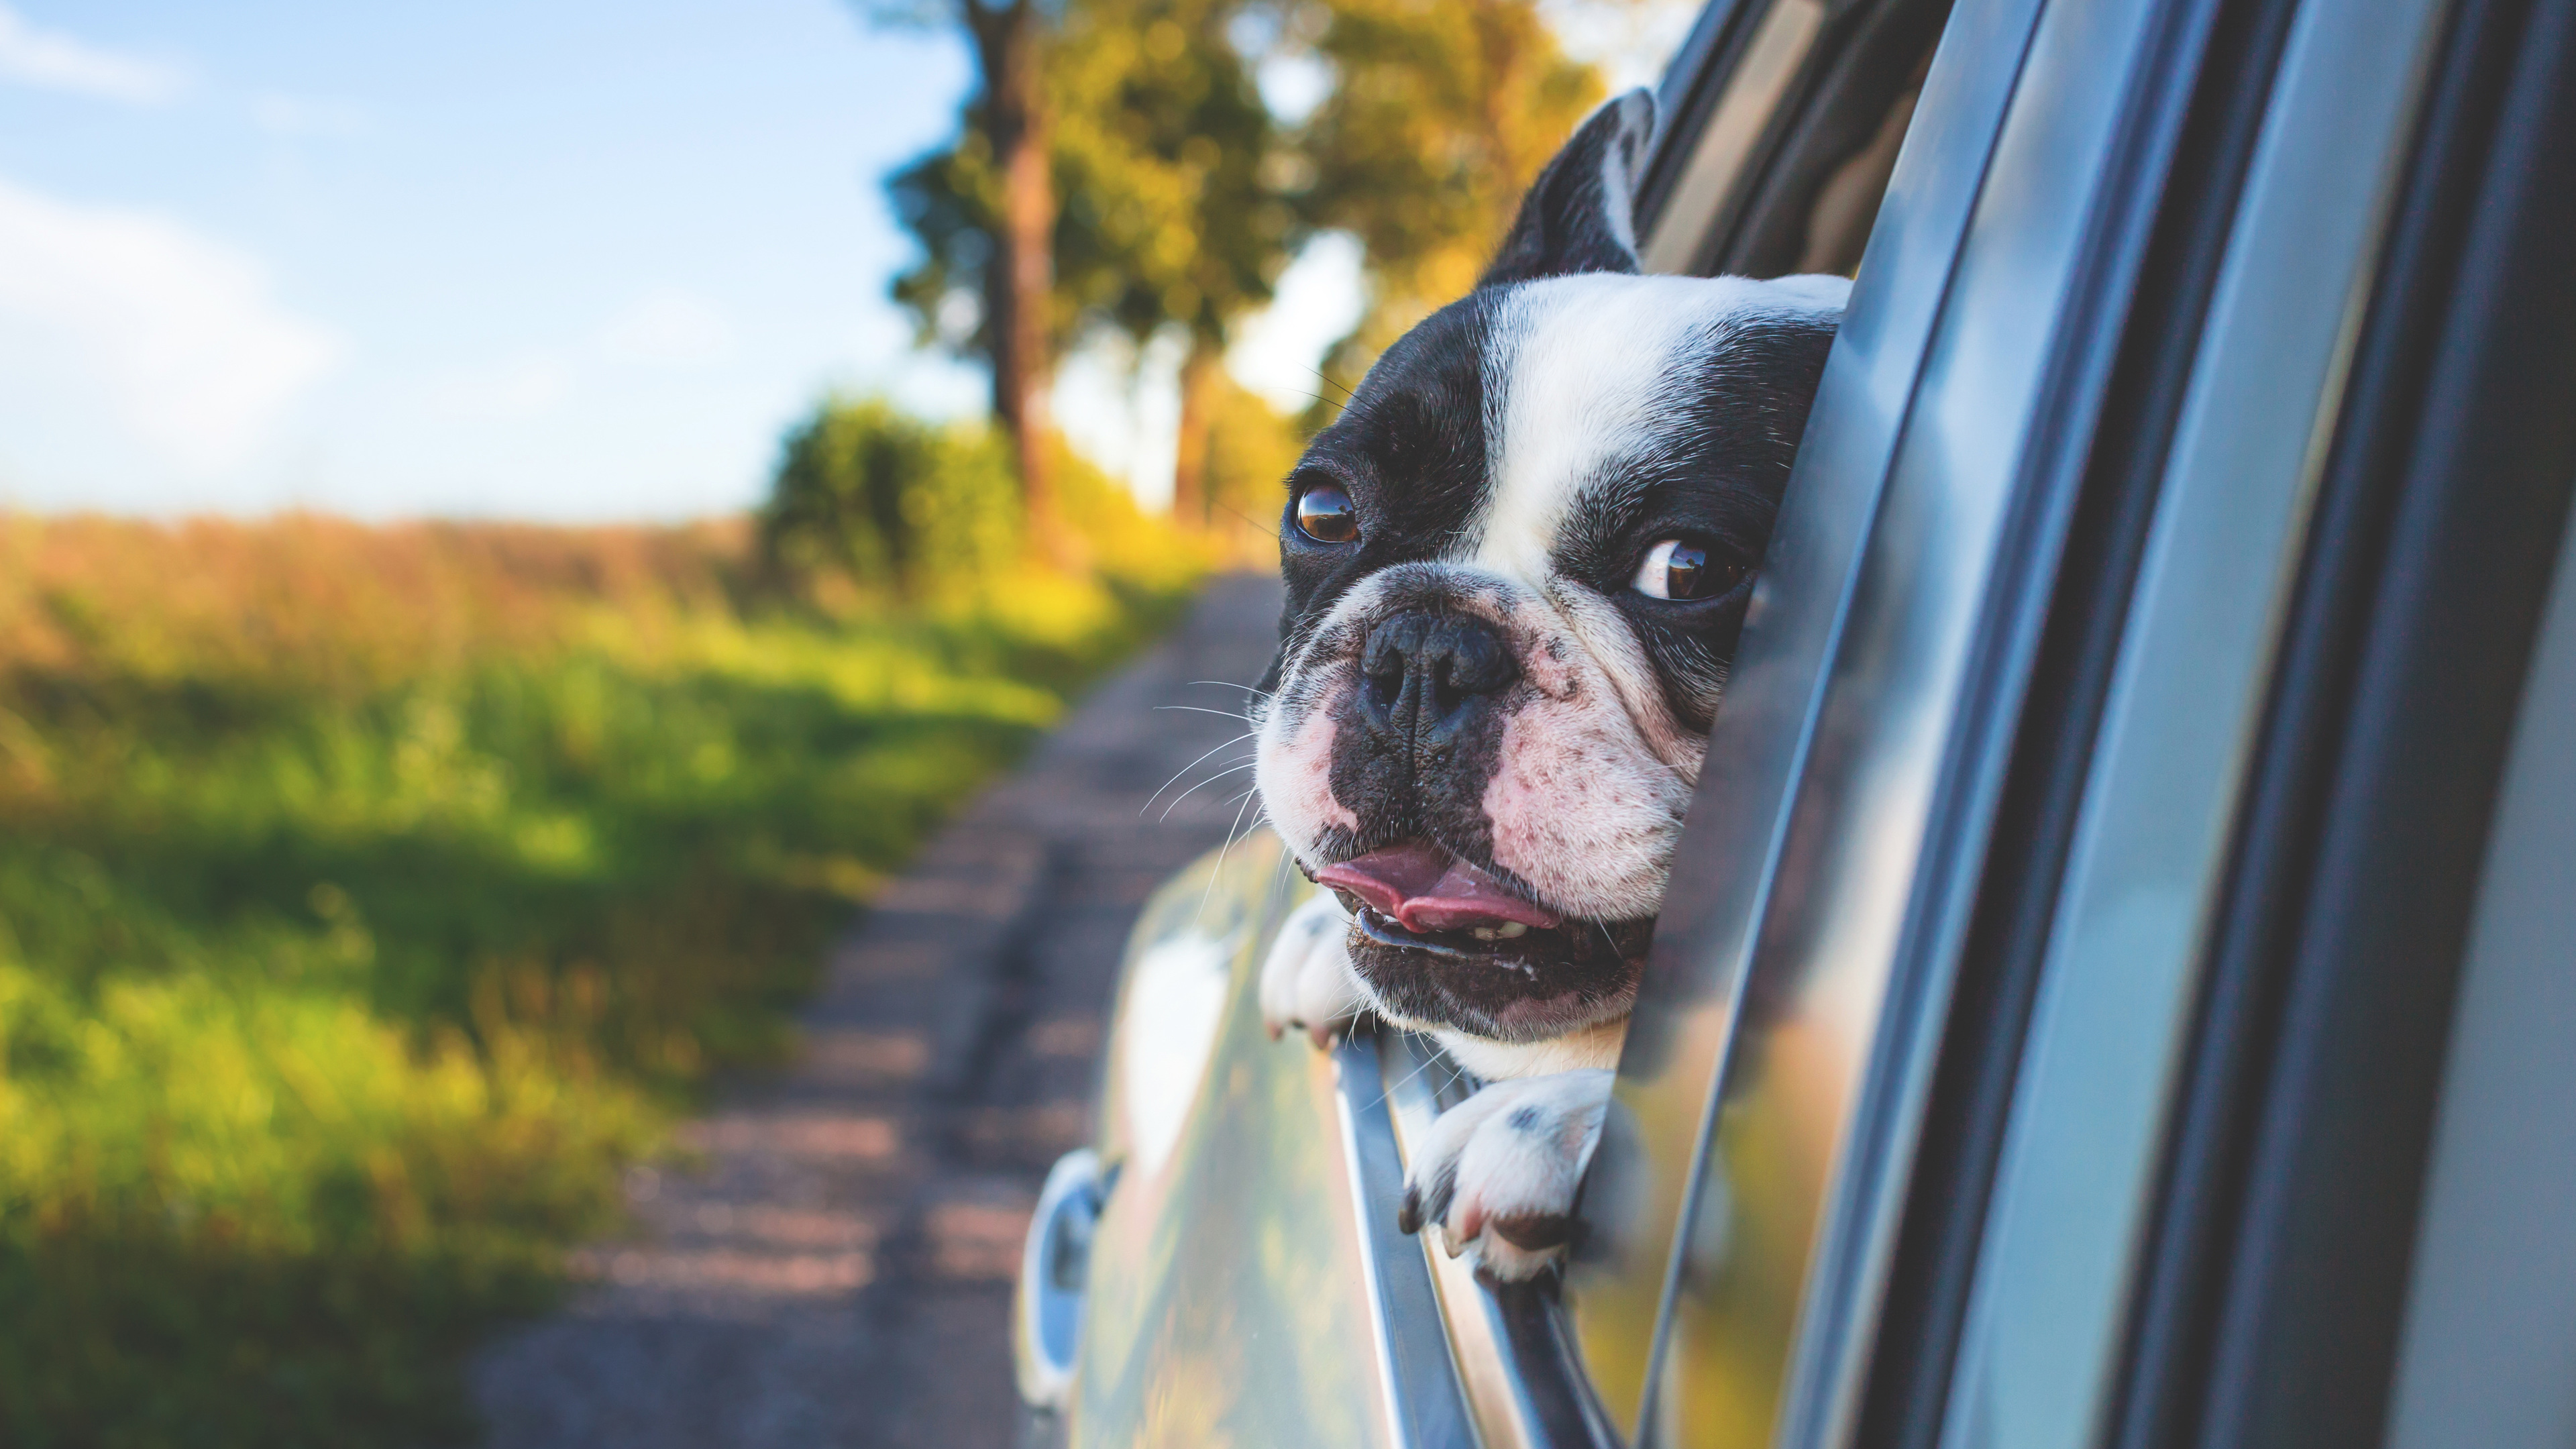 dog looking outside car window 1542238899 - Dog Looking Outside Car Window - photography wallpapers, hd-wallpapers, dog wallpapers, cute wallpapers, animals wallpapers, 4k-wallpapers